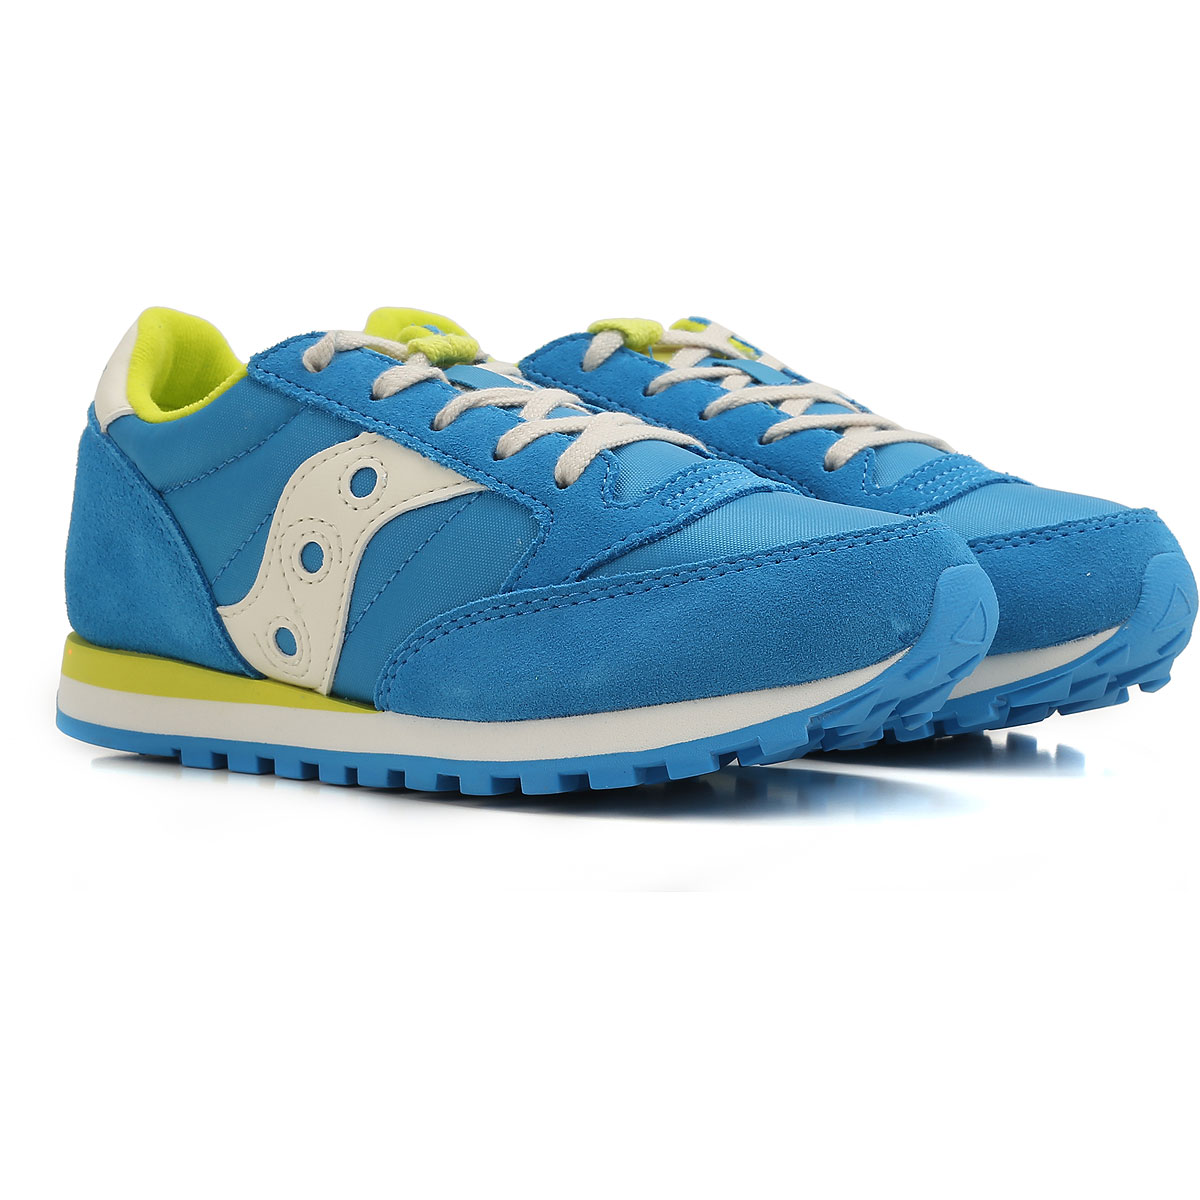 Image of Saucony Kids Shoes for Boys On Sale in Outlet, Sky Blue, Fabric, 2017, Toddler 10.5 - Ita 27 UK 13.5 - EUR 32 Child 1.5 - Ita 33